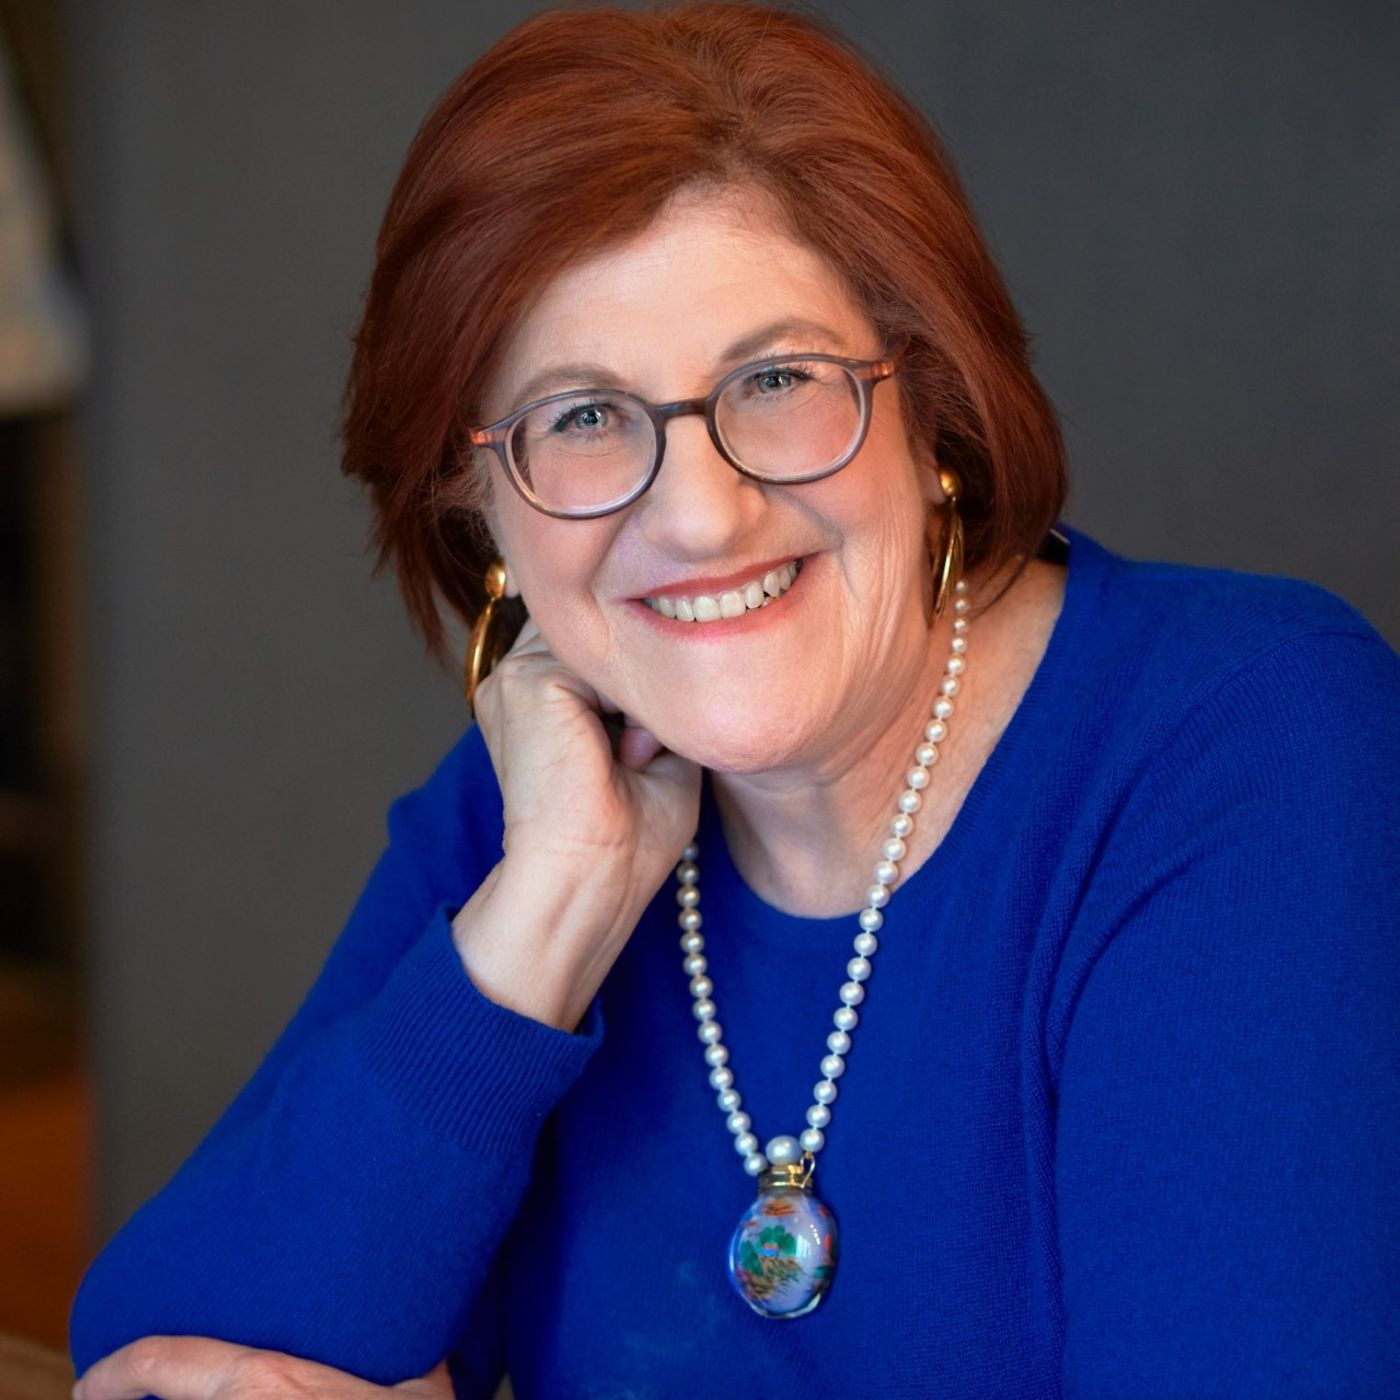 Spotlight Thursday: Learn How To Turn Content Into Revenue With Lynn Miller